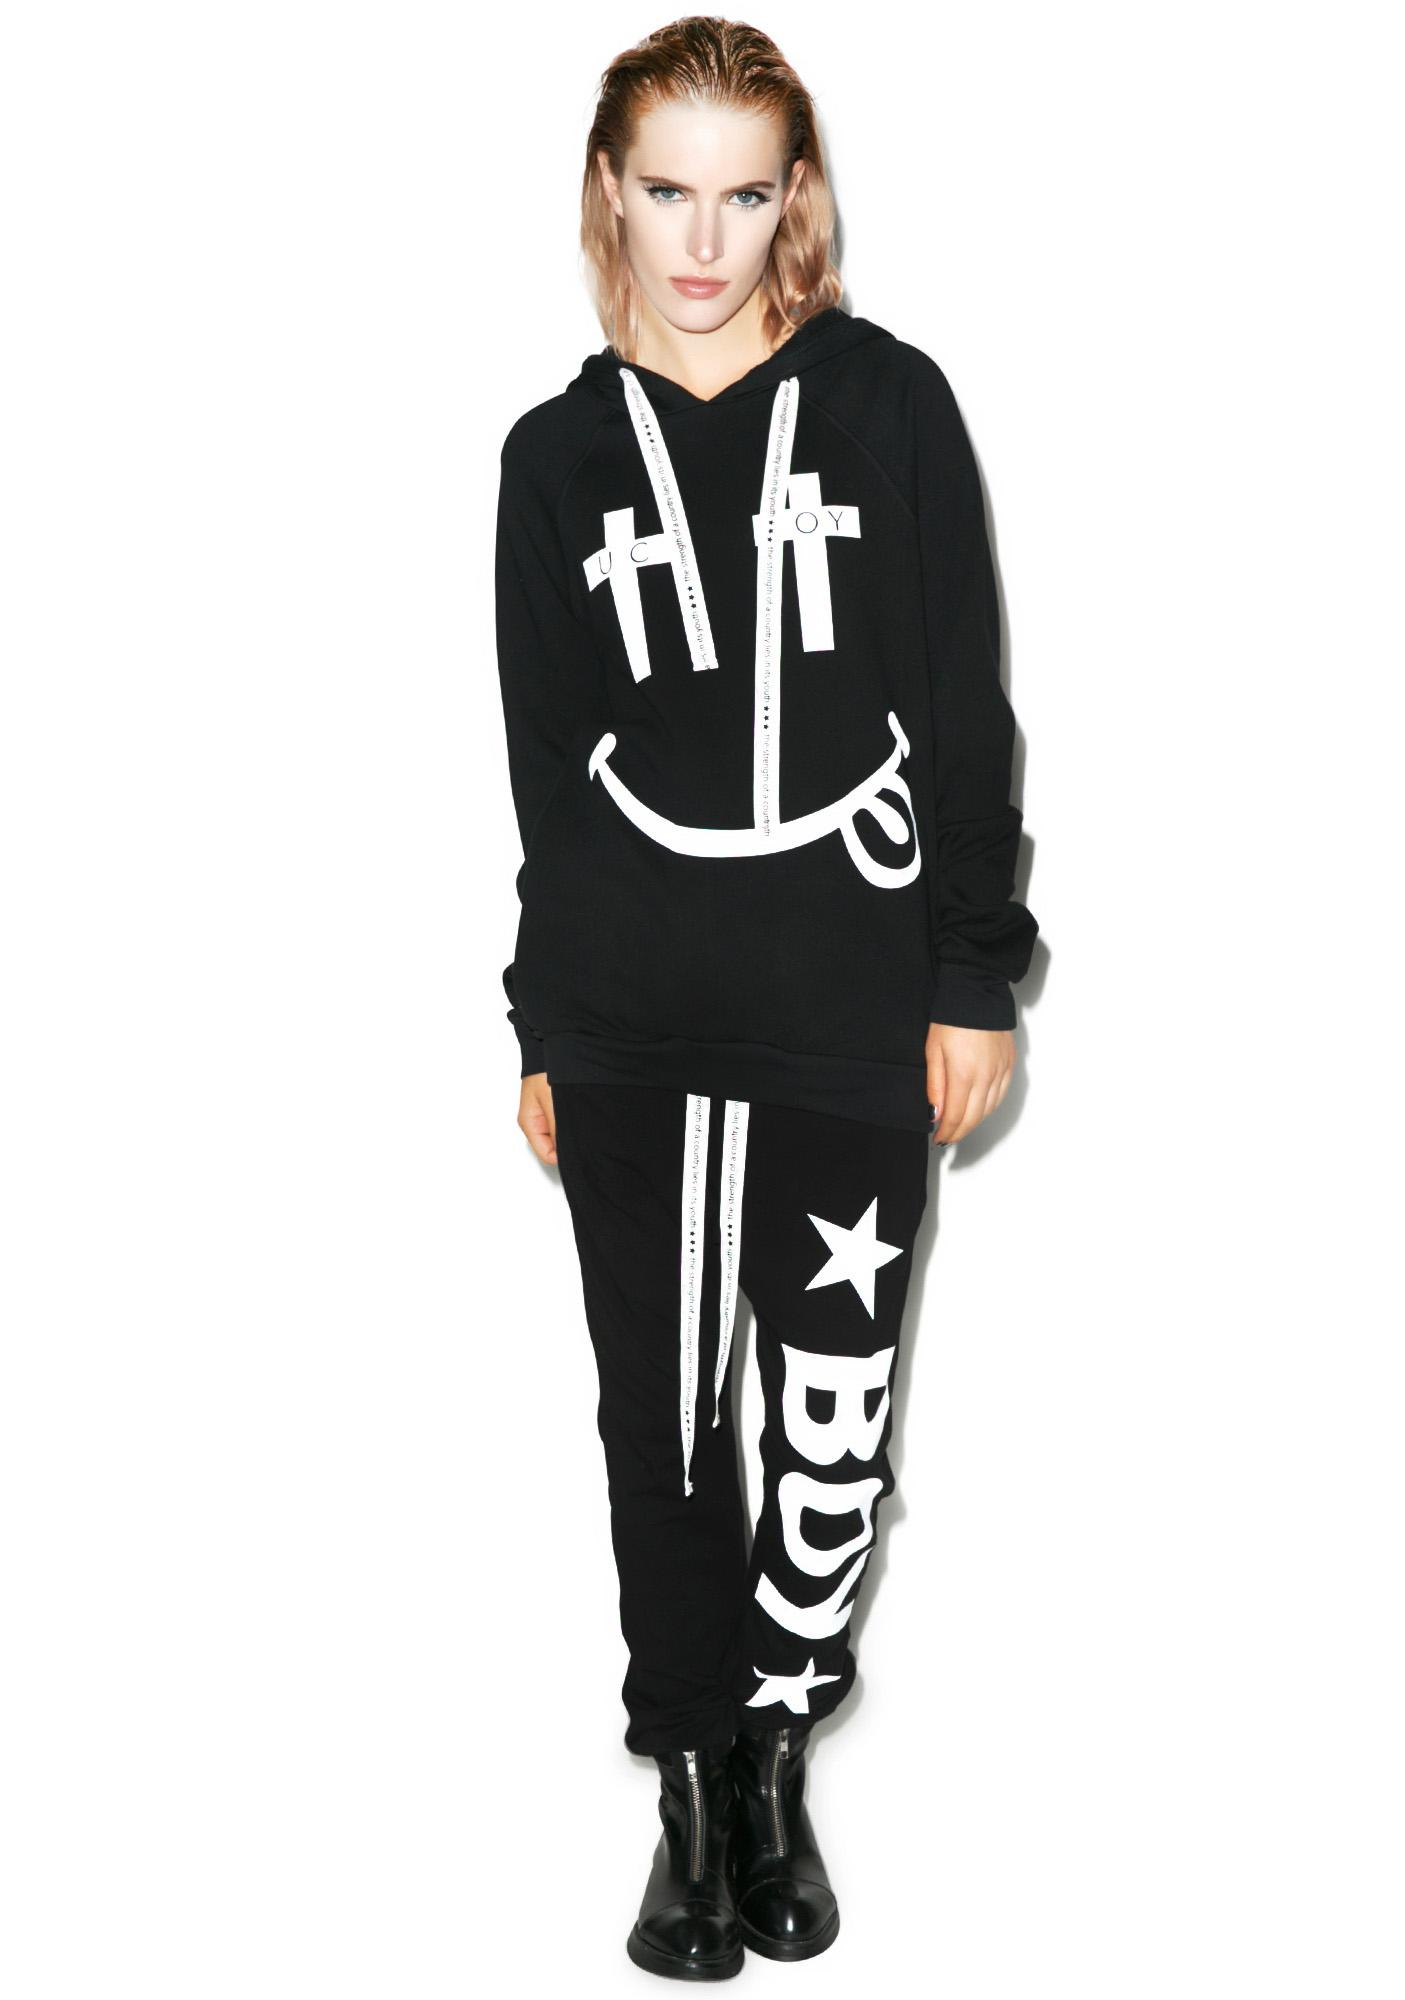 BOY London United Boy Black Acid Hooded Sweatshirt